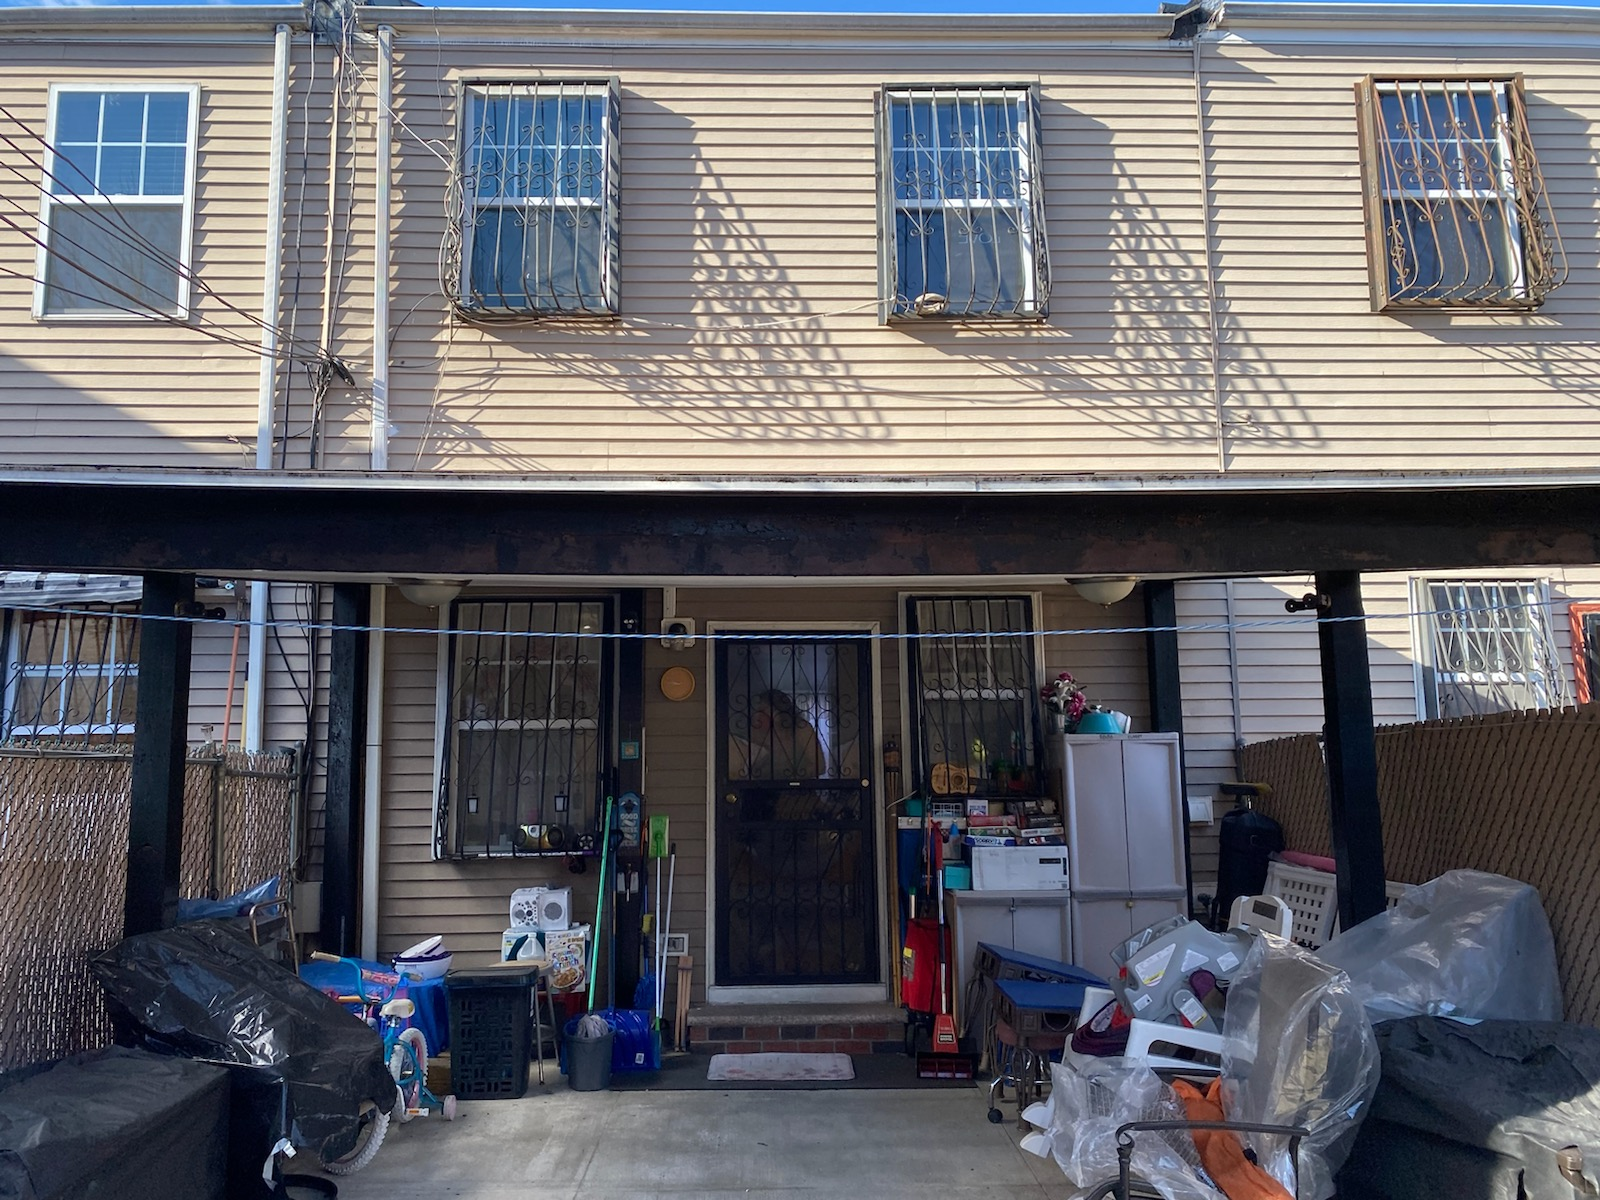 Apartment for sale at 475 Sheffield Avenue, Apt 1FAMILY